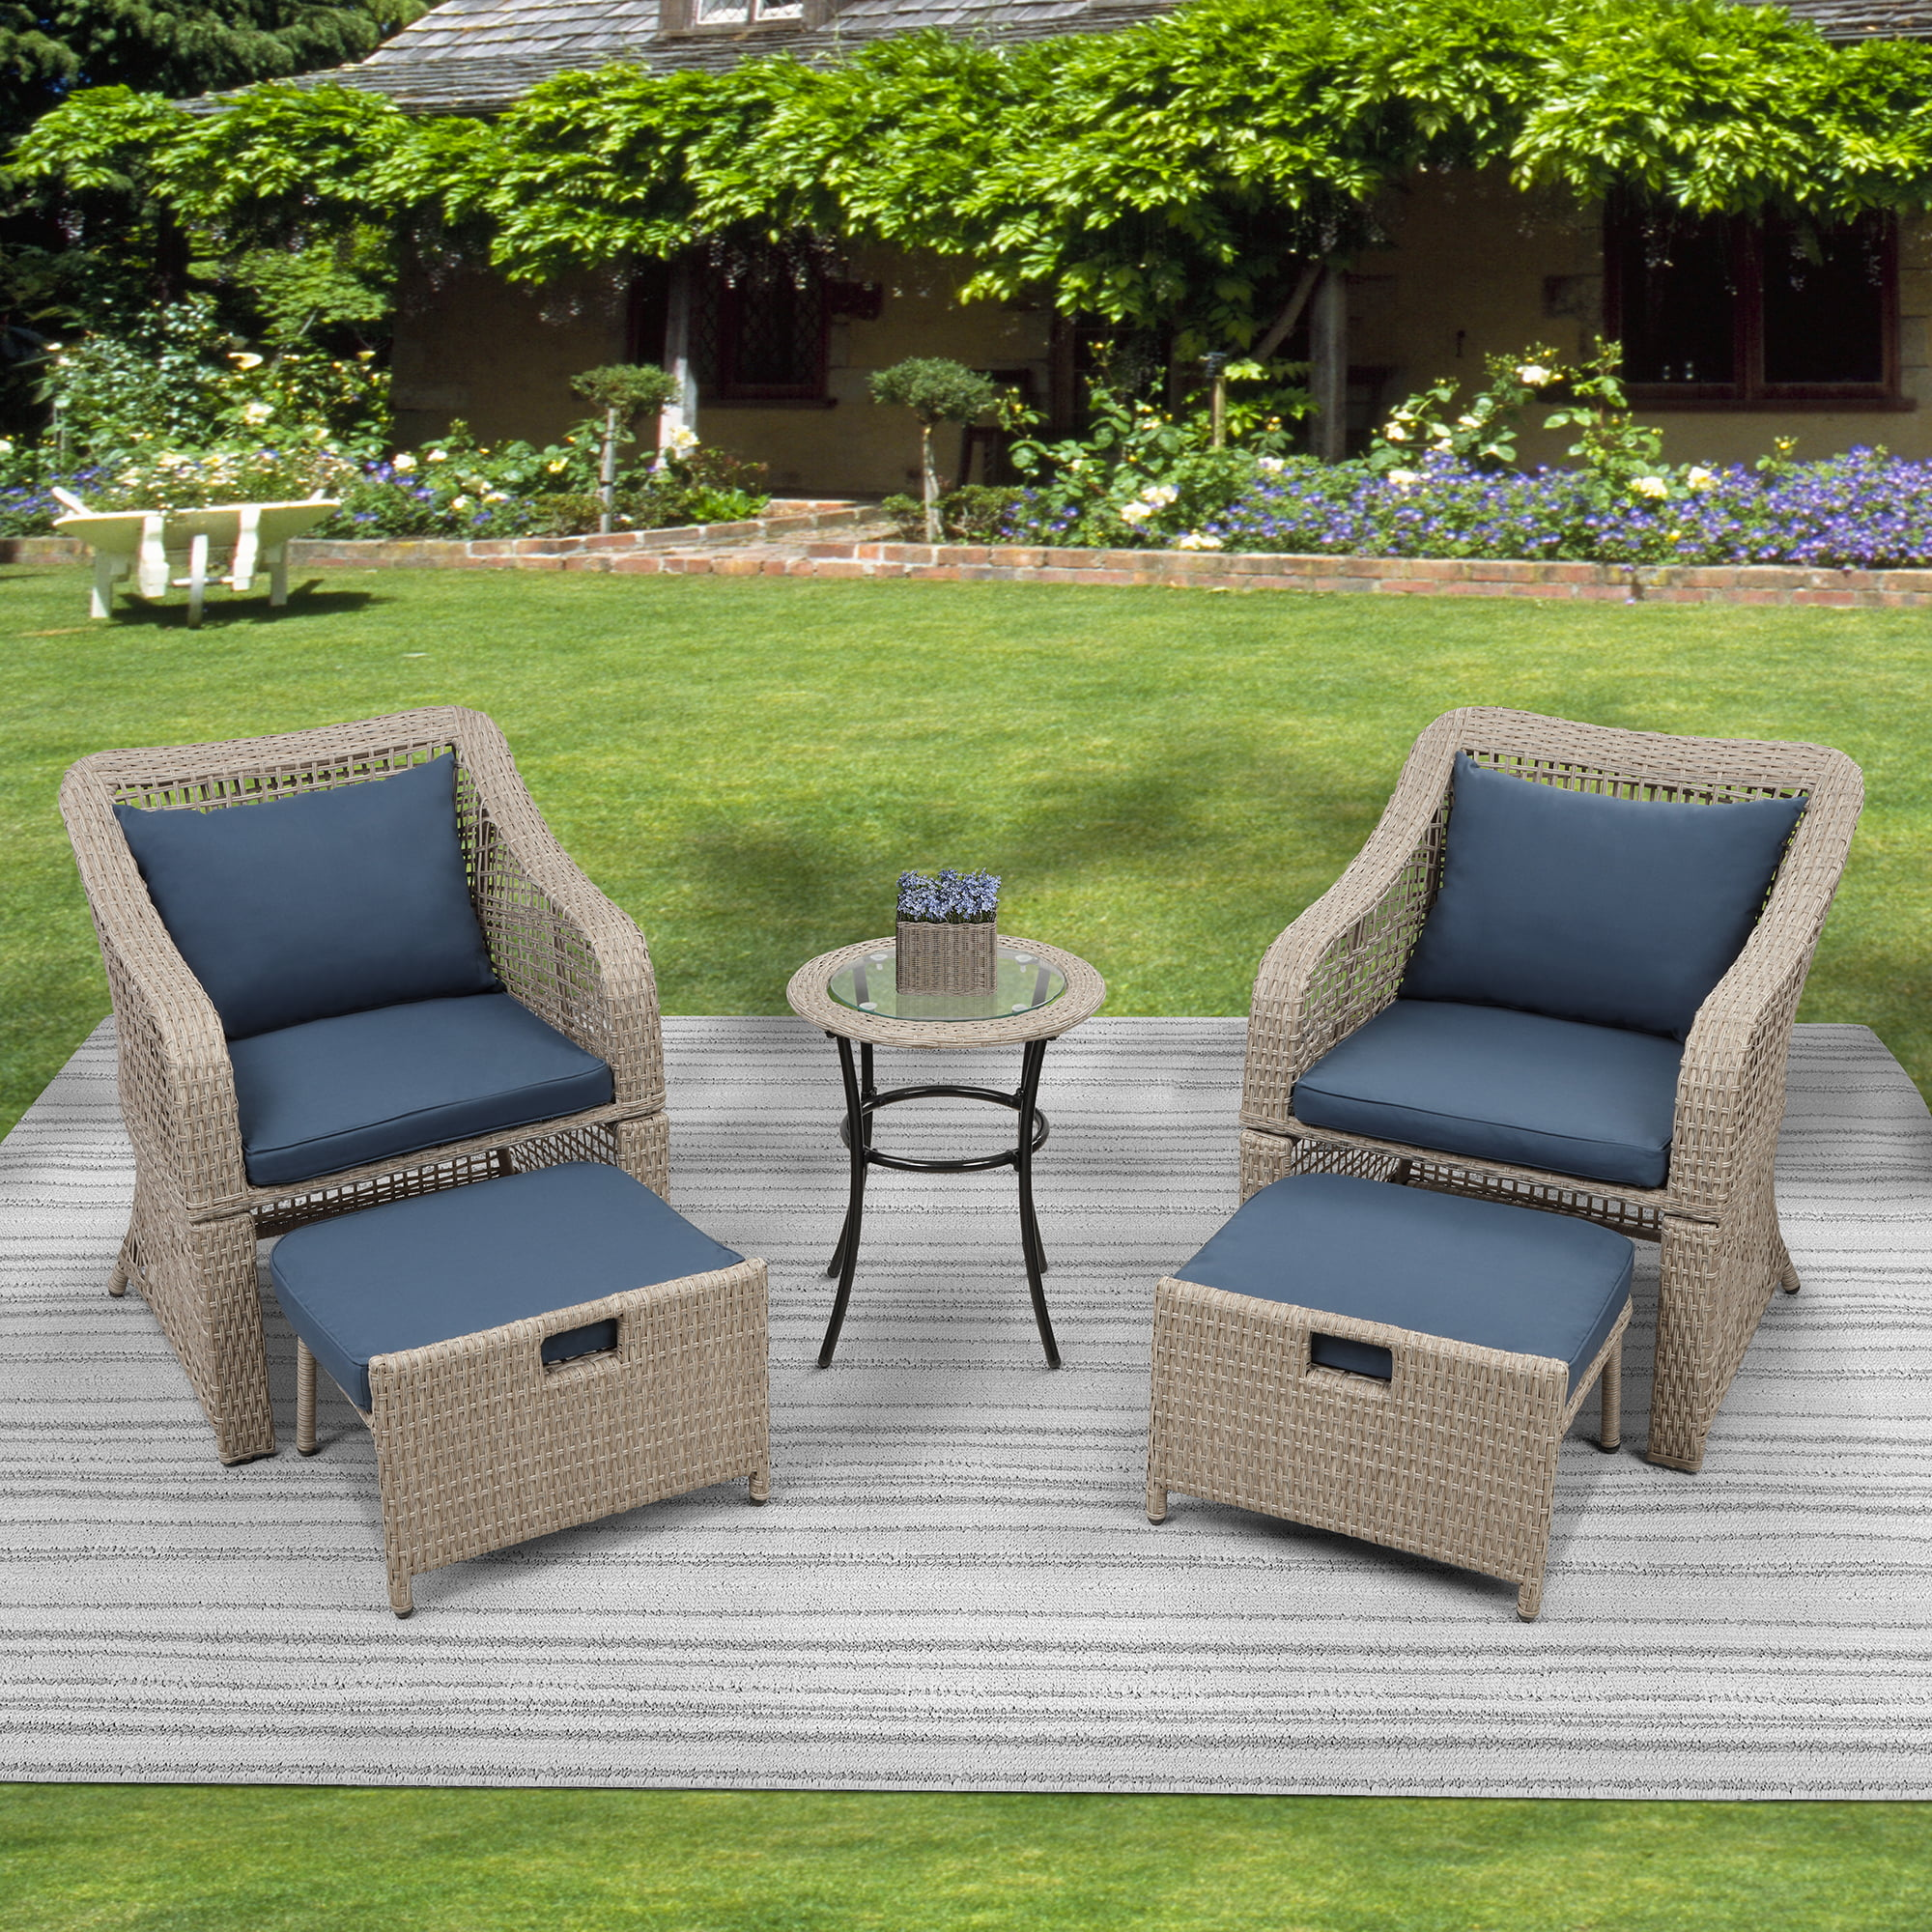 outdoor patio furniture sets 5 piece wicker patio bar set 2pcs arm chairs 2 footstool coffee table outdoor conversation sets for backyard lawn